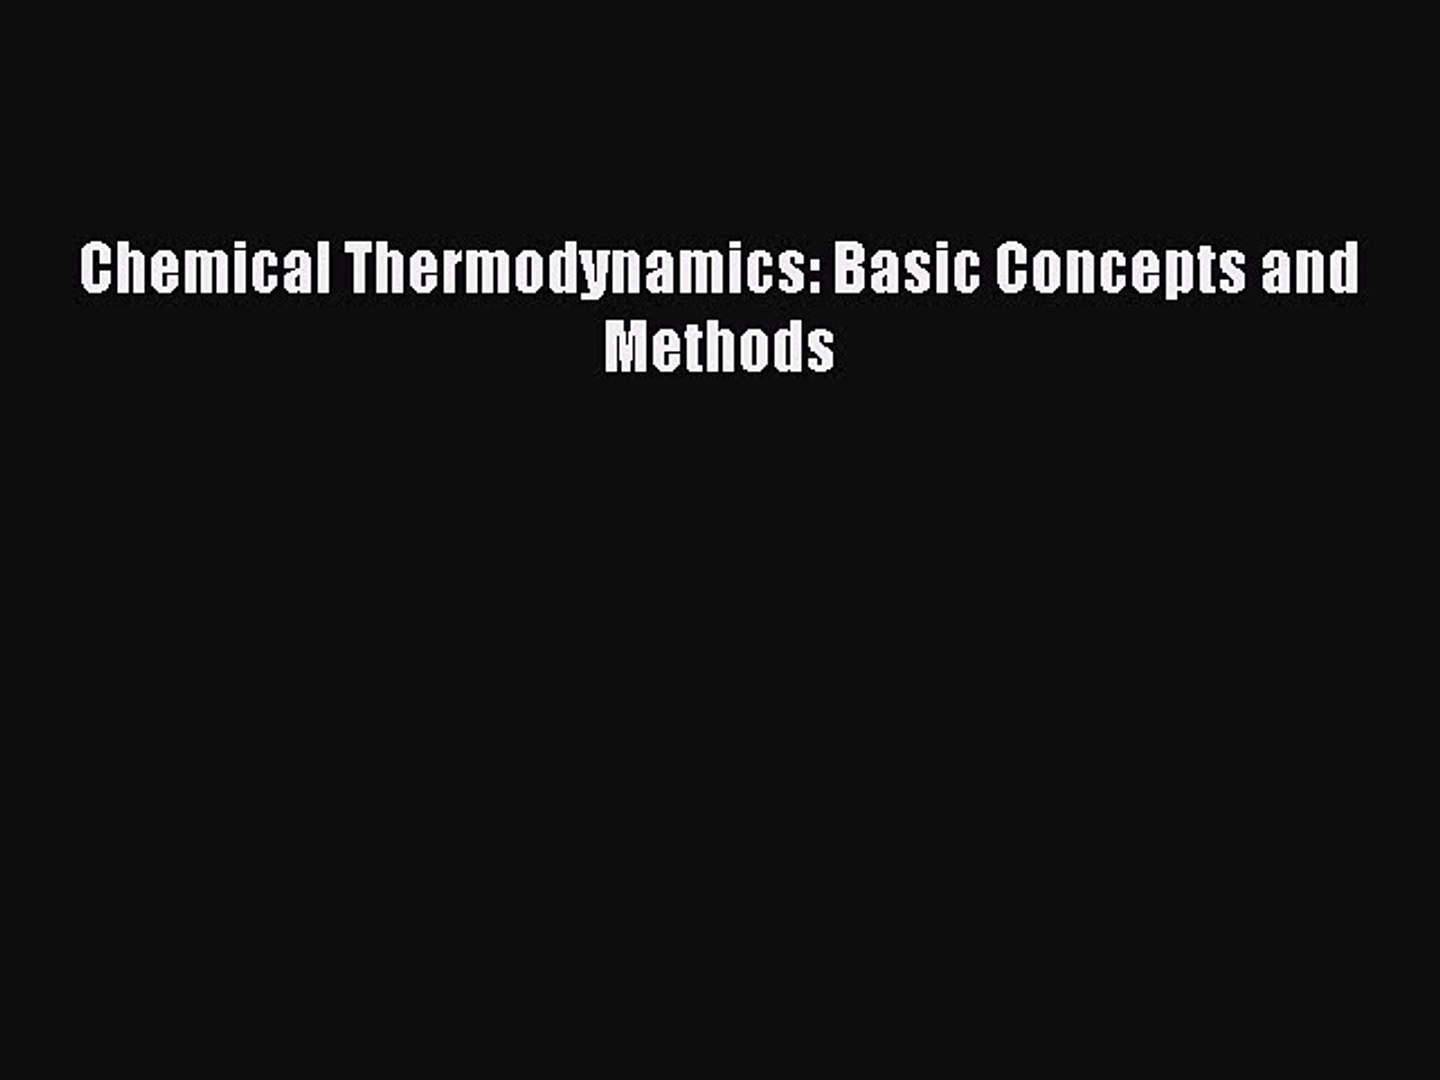 Chemical Thermodynamics. Basic Concepts and Methods